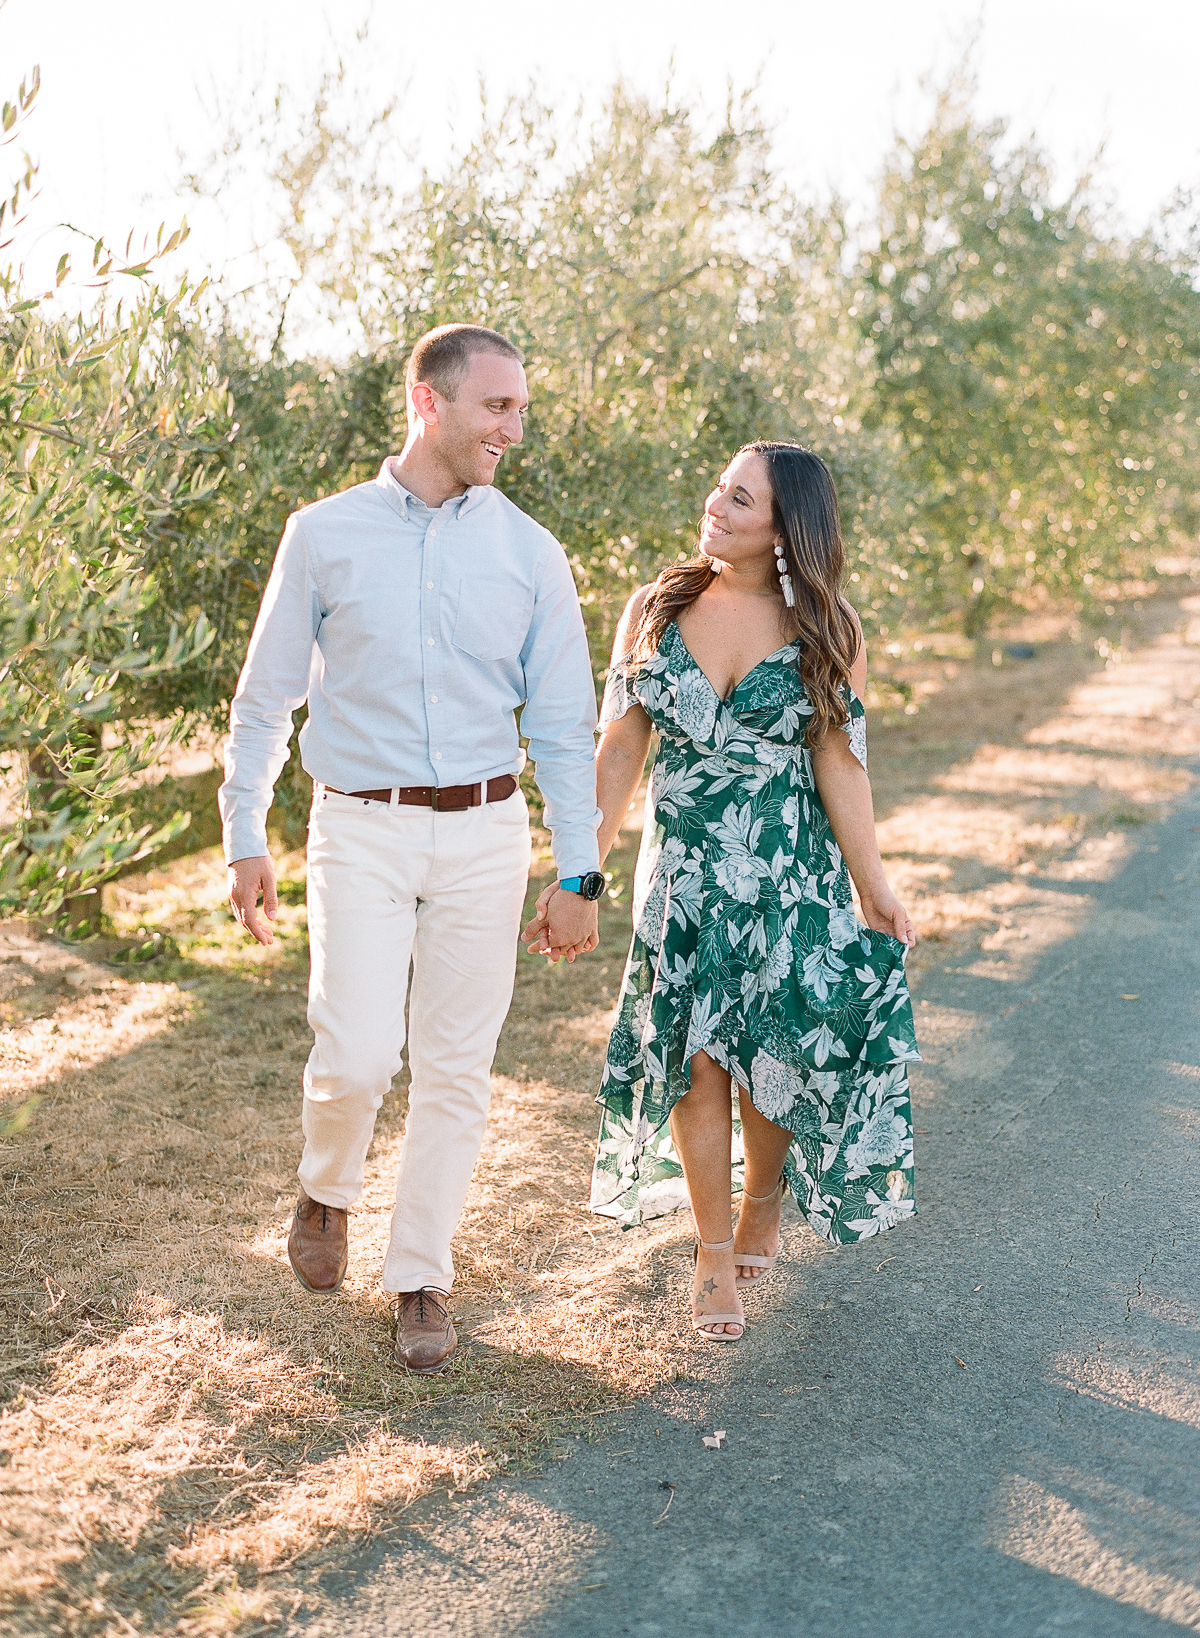 Castello di Amorosa Engagement Session in Napa The Ganeys13